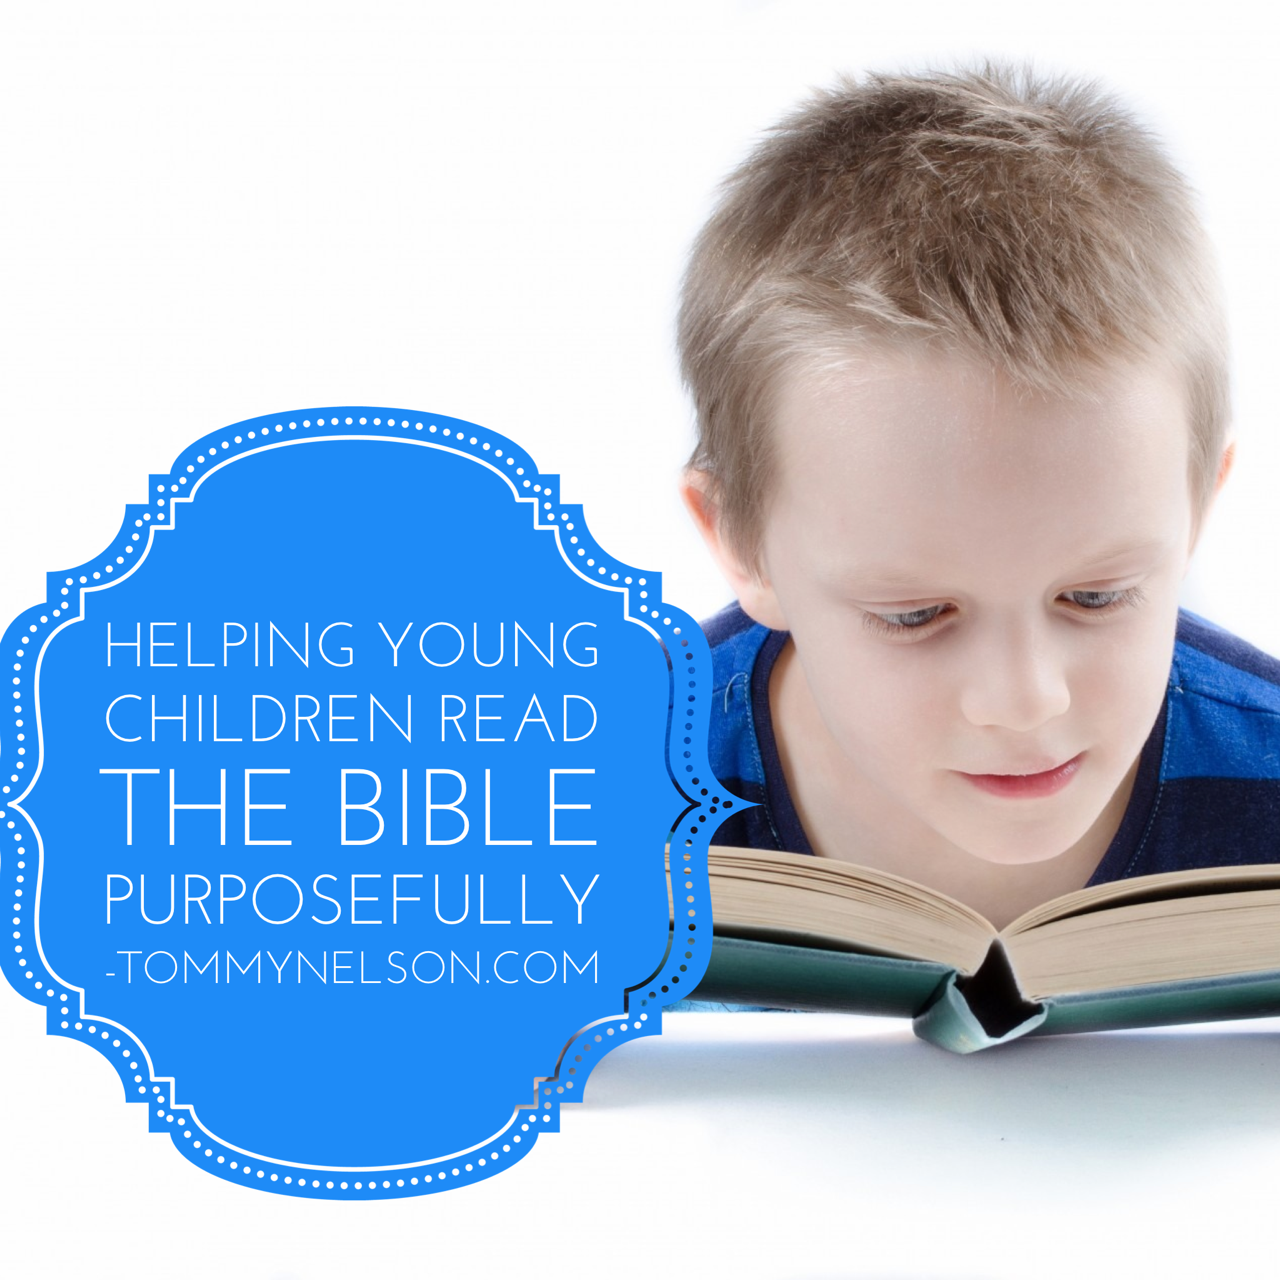 Worksheet Helping A Child Read helping young children read the bible purposefully tommy nelson learning to enjoy reading at an early age is a wonderful way develop lifelong habit of when lov